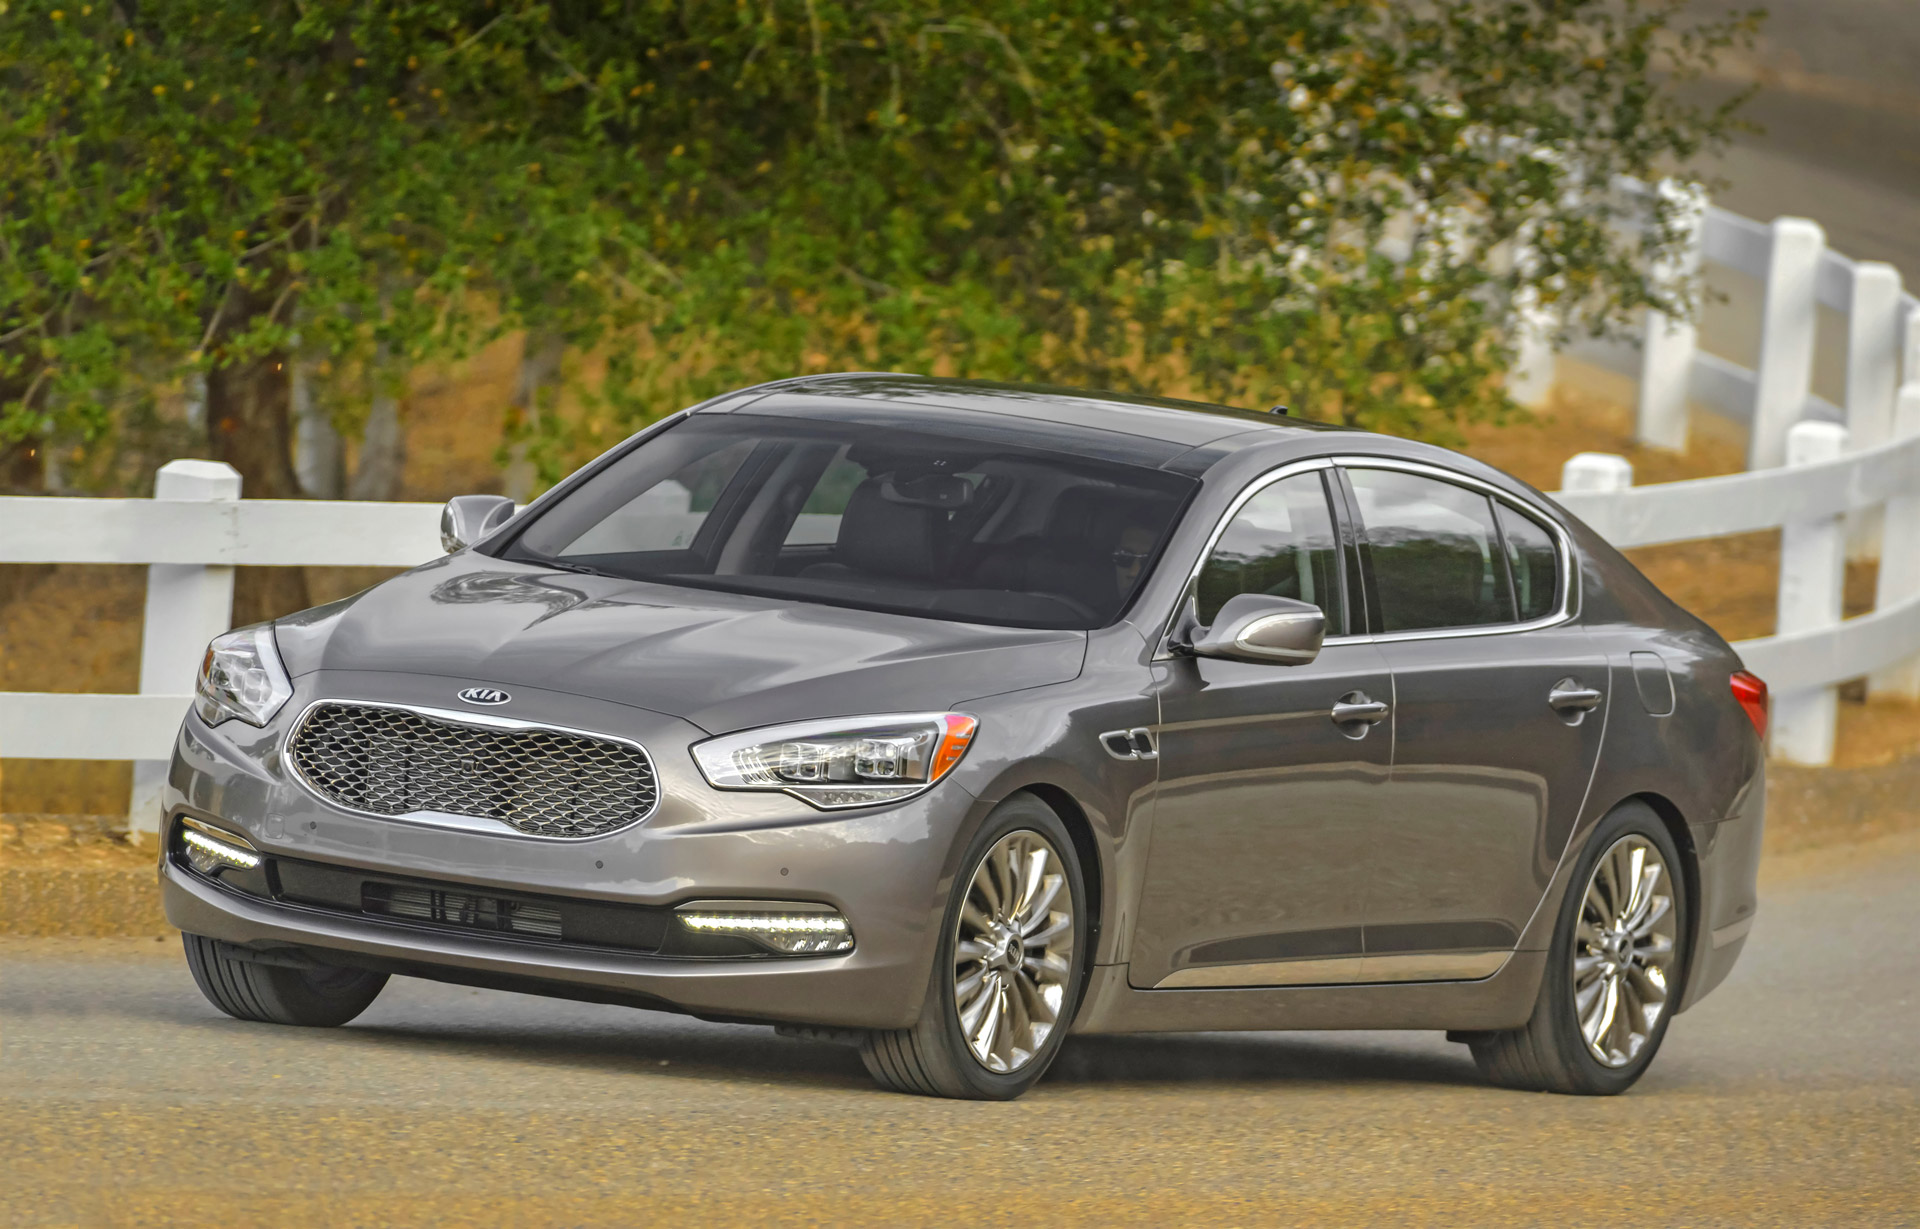 2016 kia k900 review ratings specs prices and photos the car connection. Black Bedroom Furniture Sets. Home Design Ideas